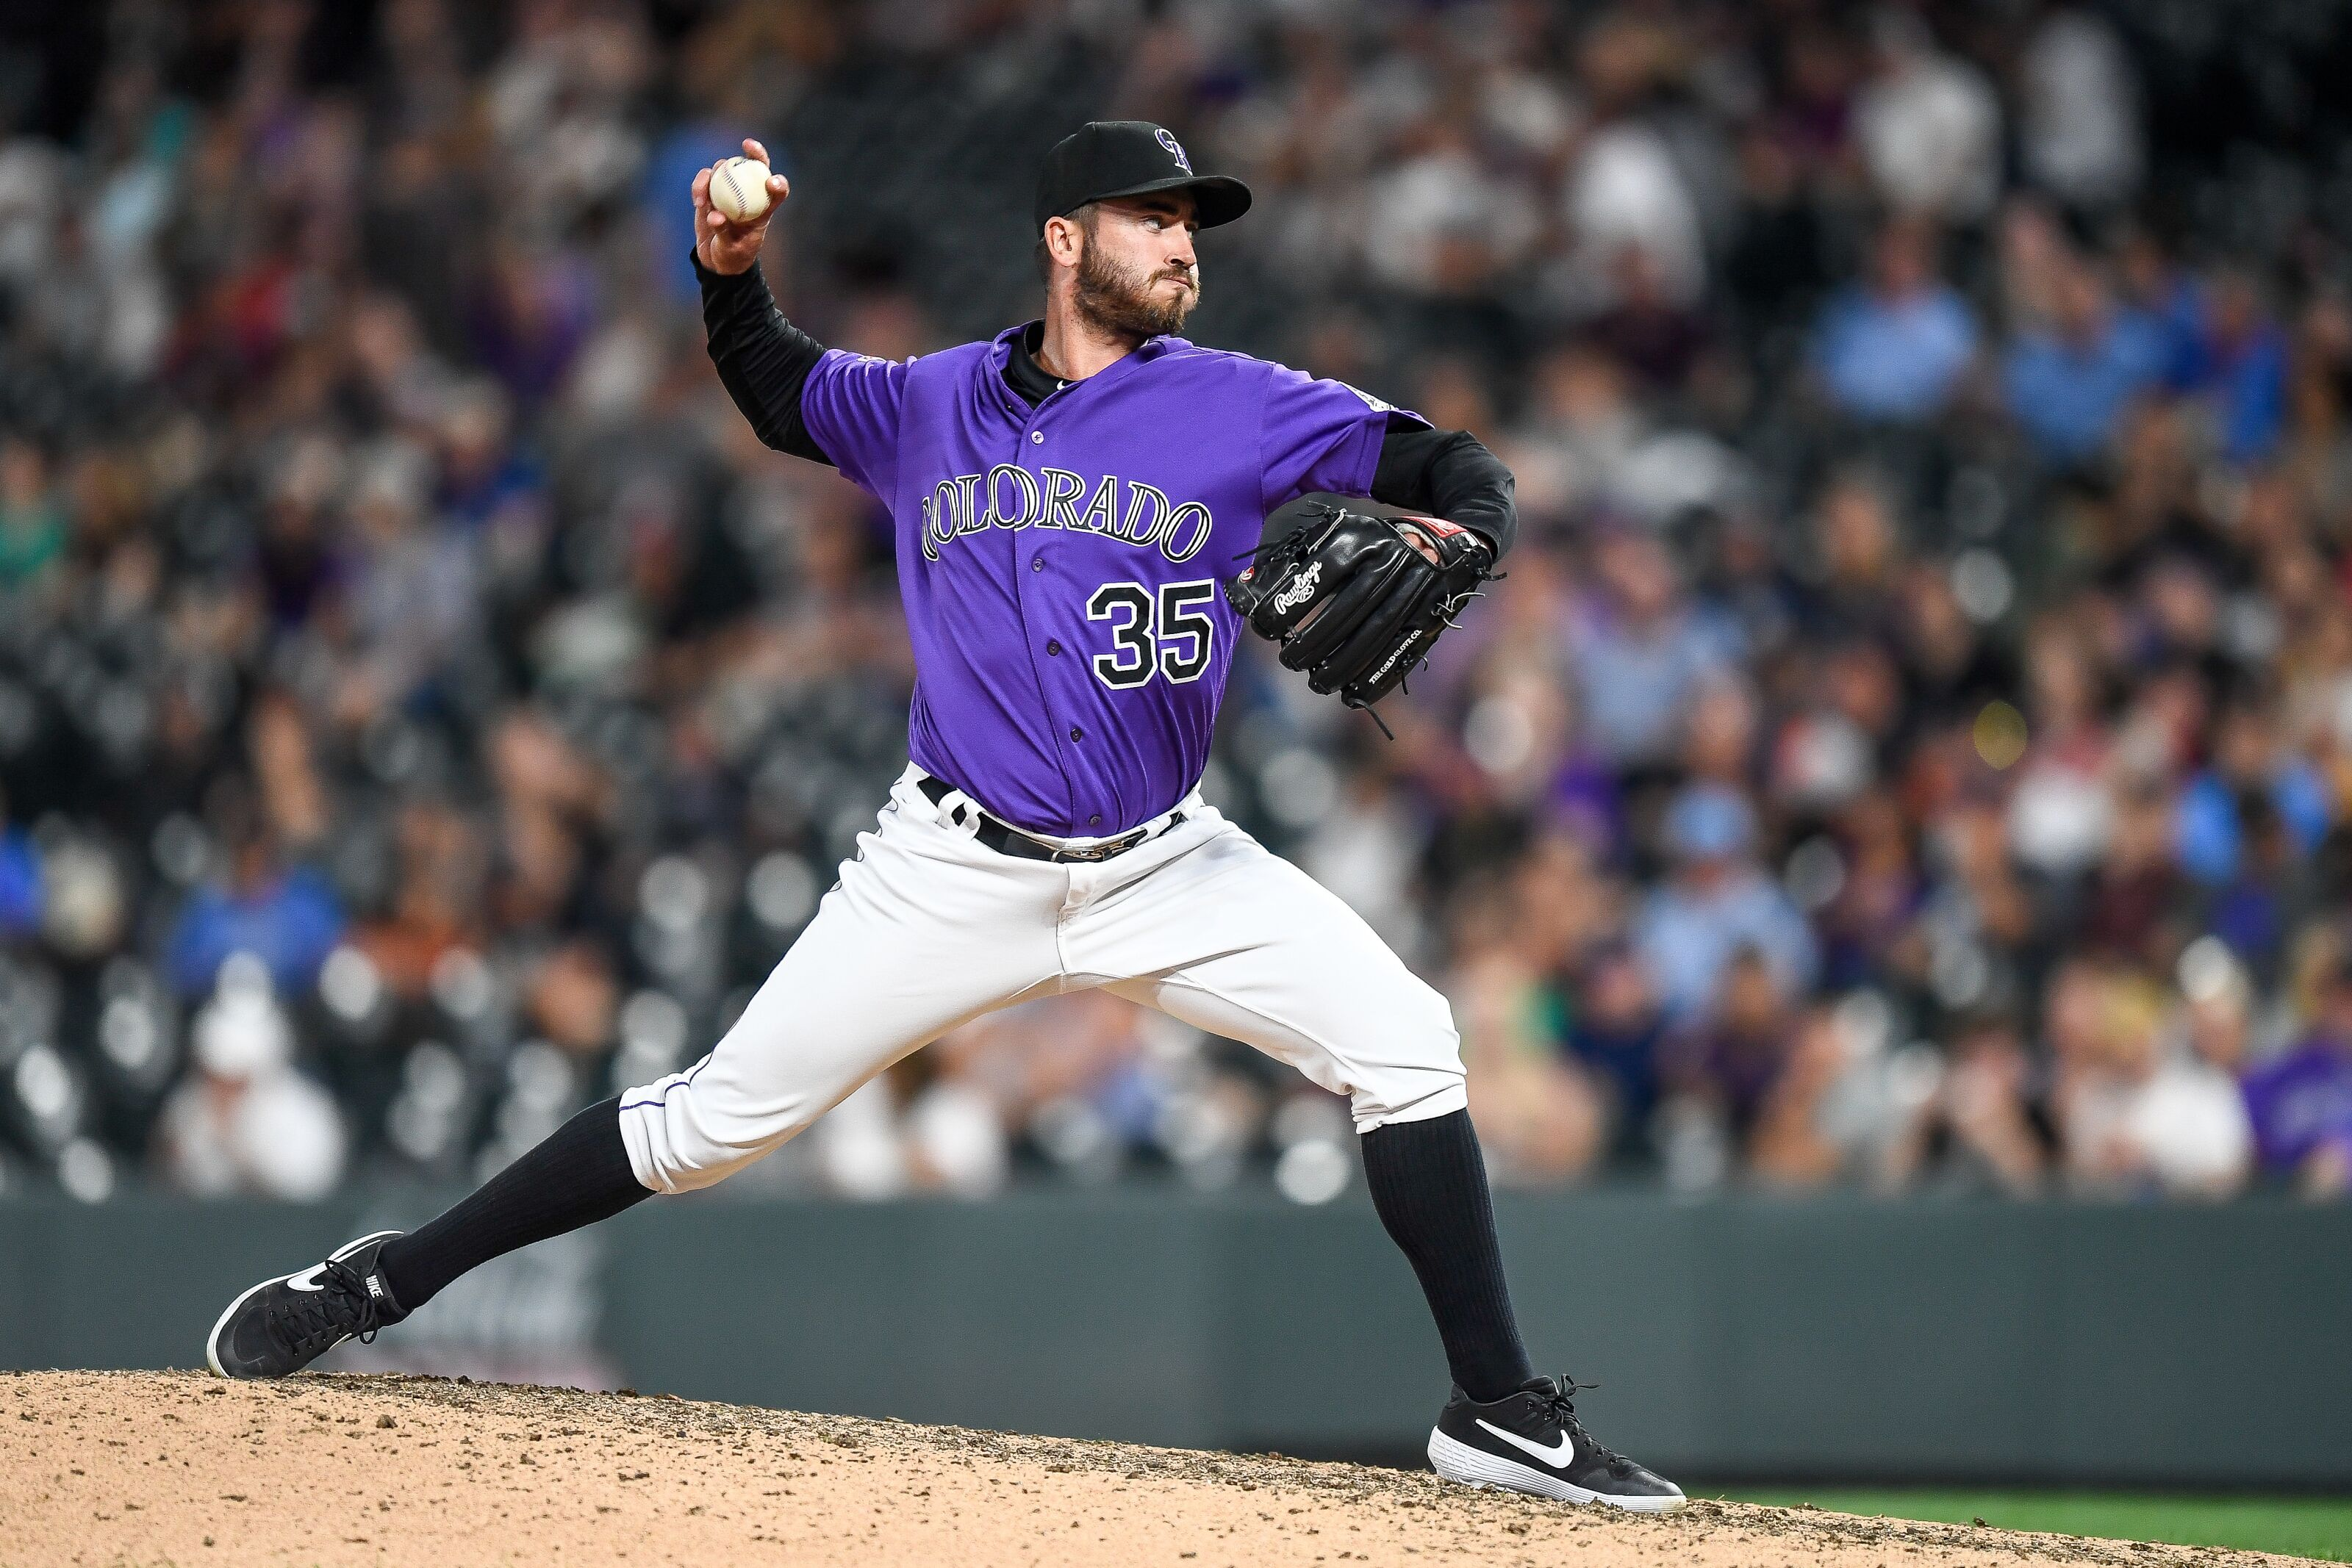 Yankees reportedly sign RHP Chad Bettis to a minor-league deal